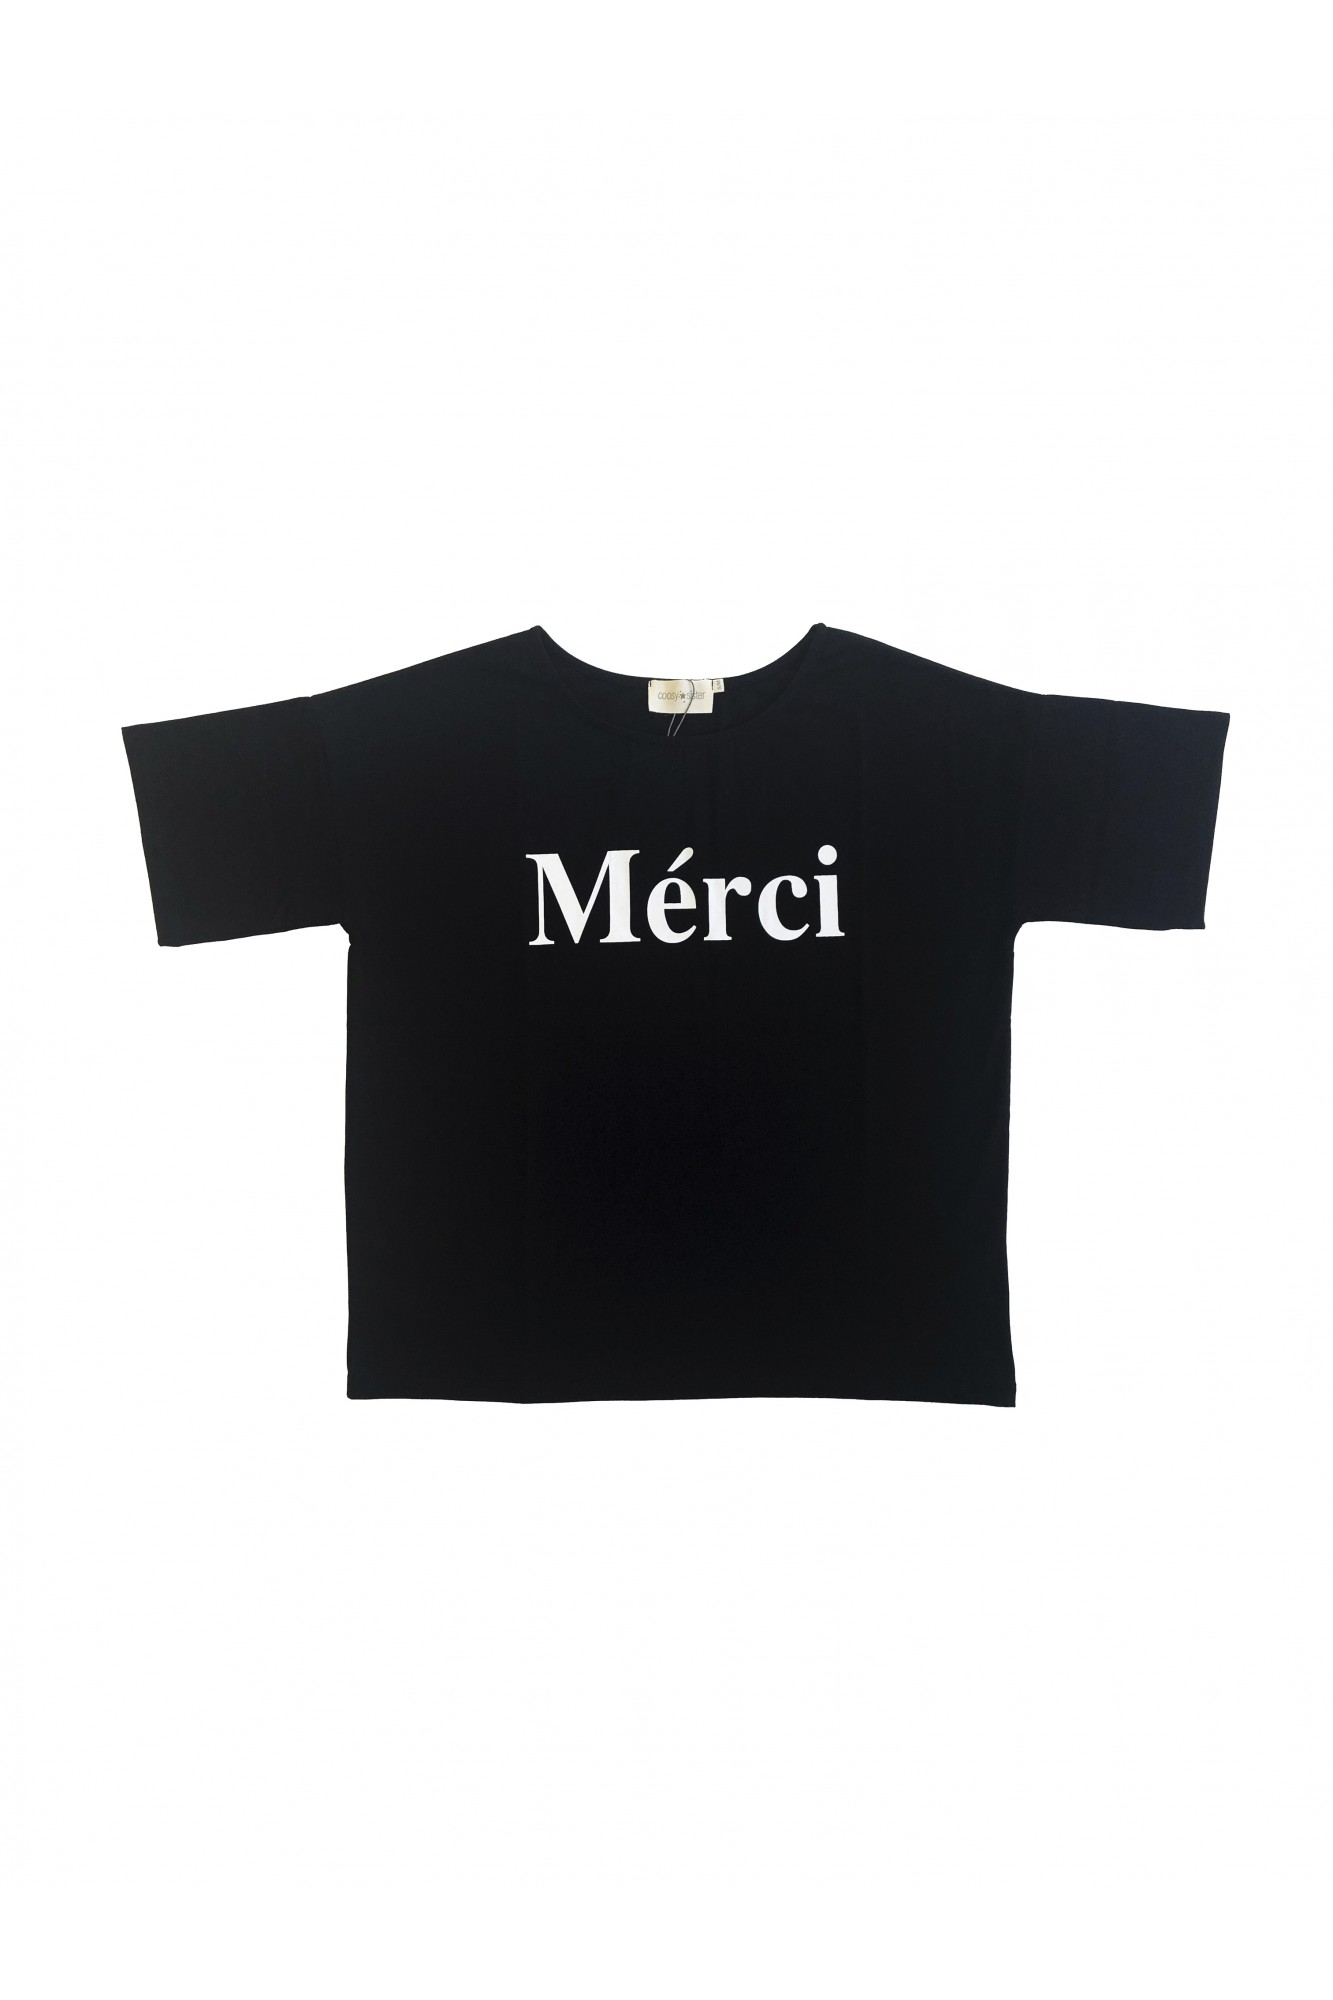 SISTER MERCI BLACK TSHIRT